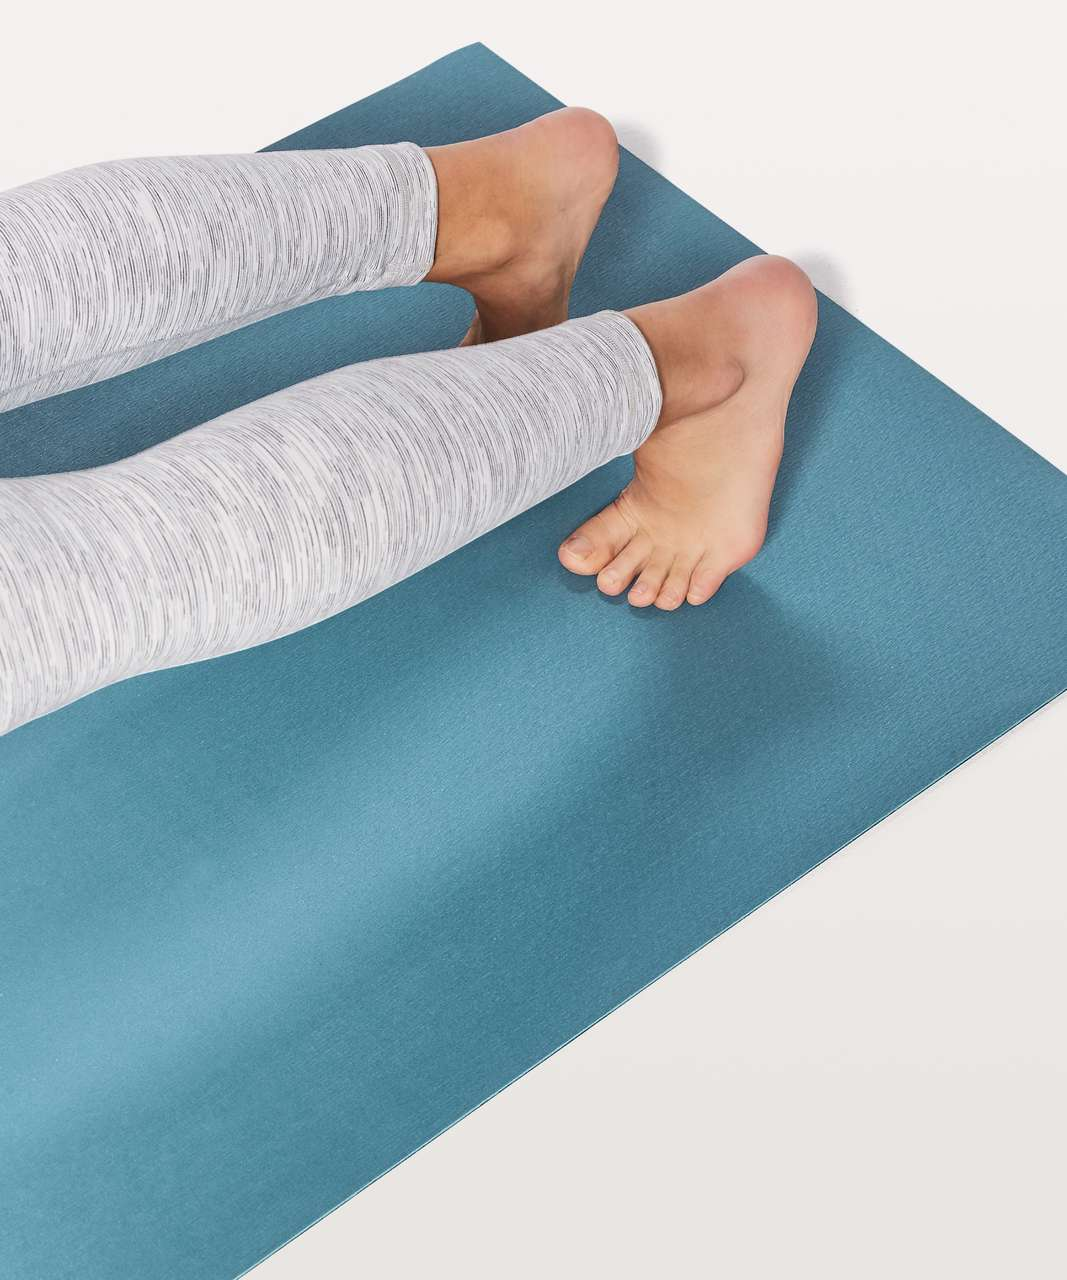 Lululemon Namastay Mat - Persian Blue / Dark Uniform Blue